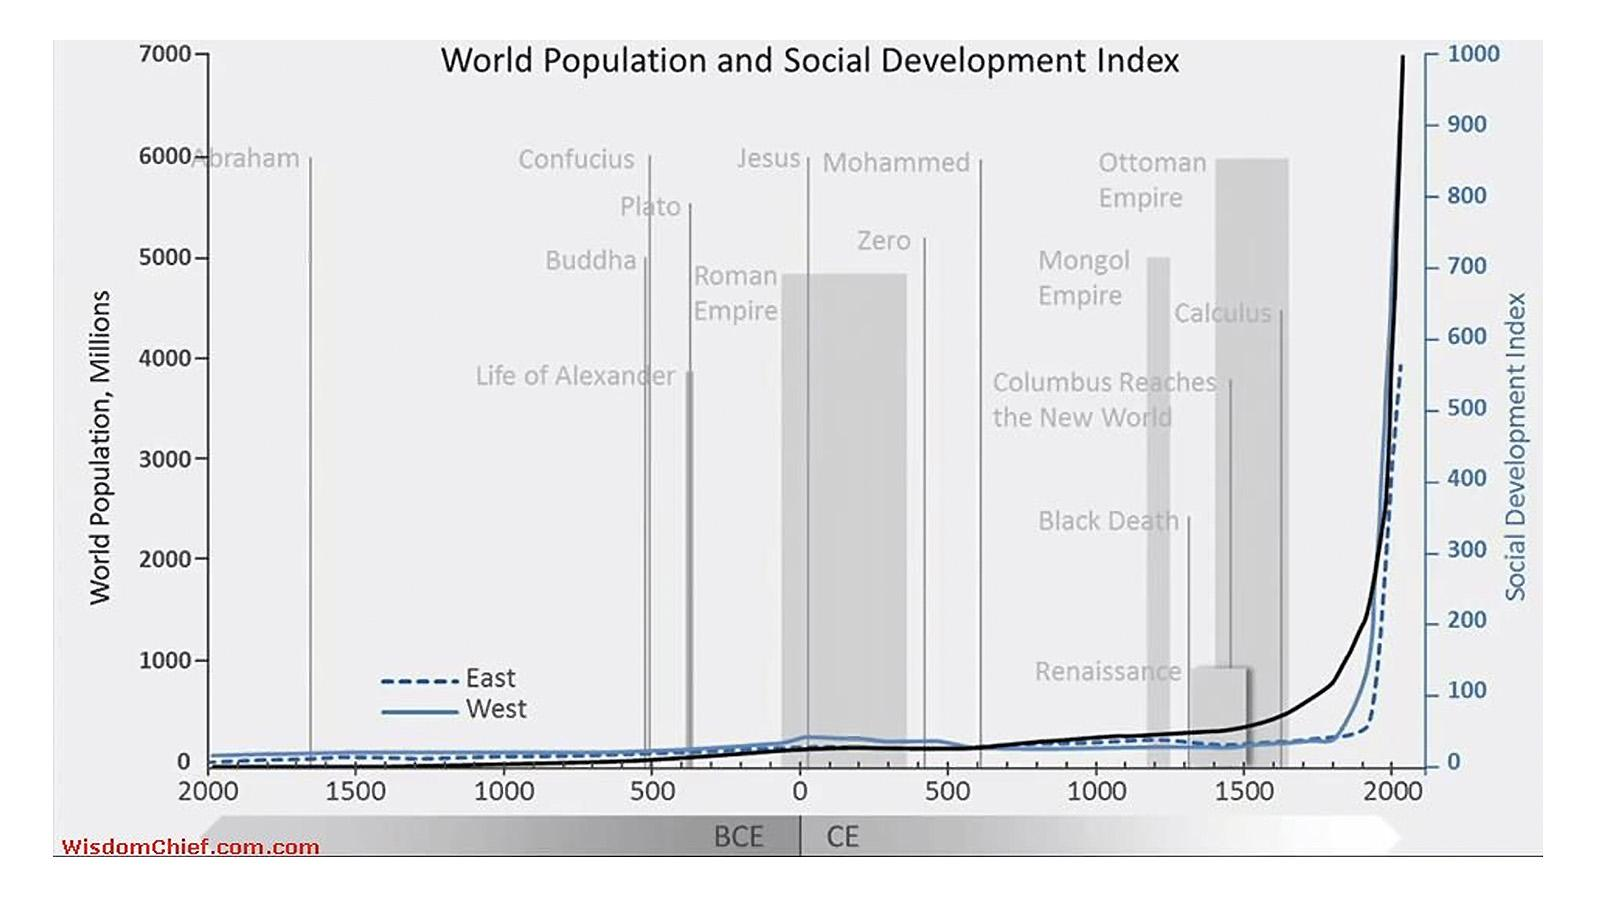 World Population Development Index